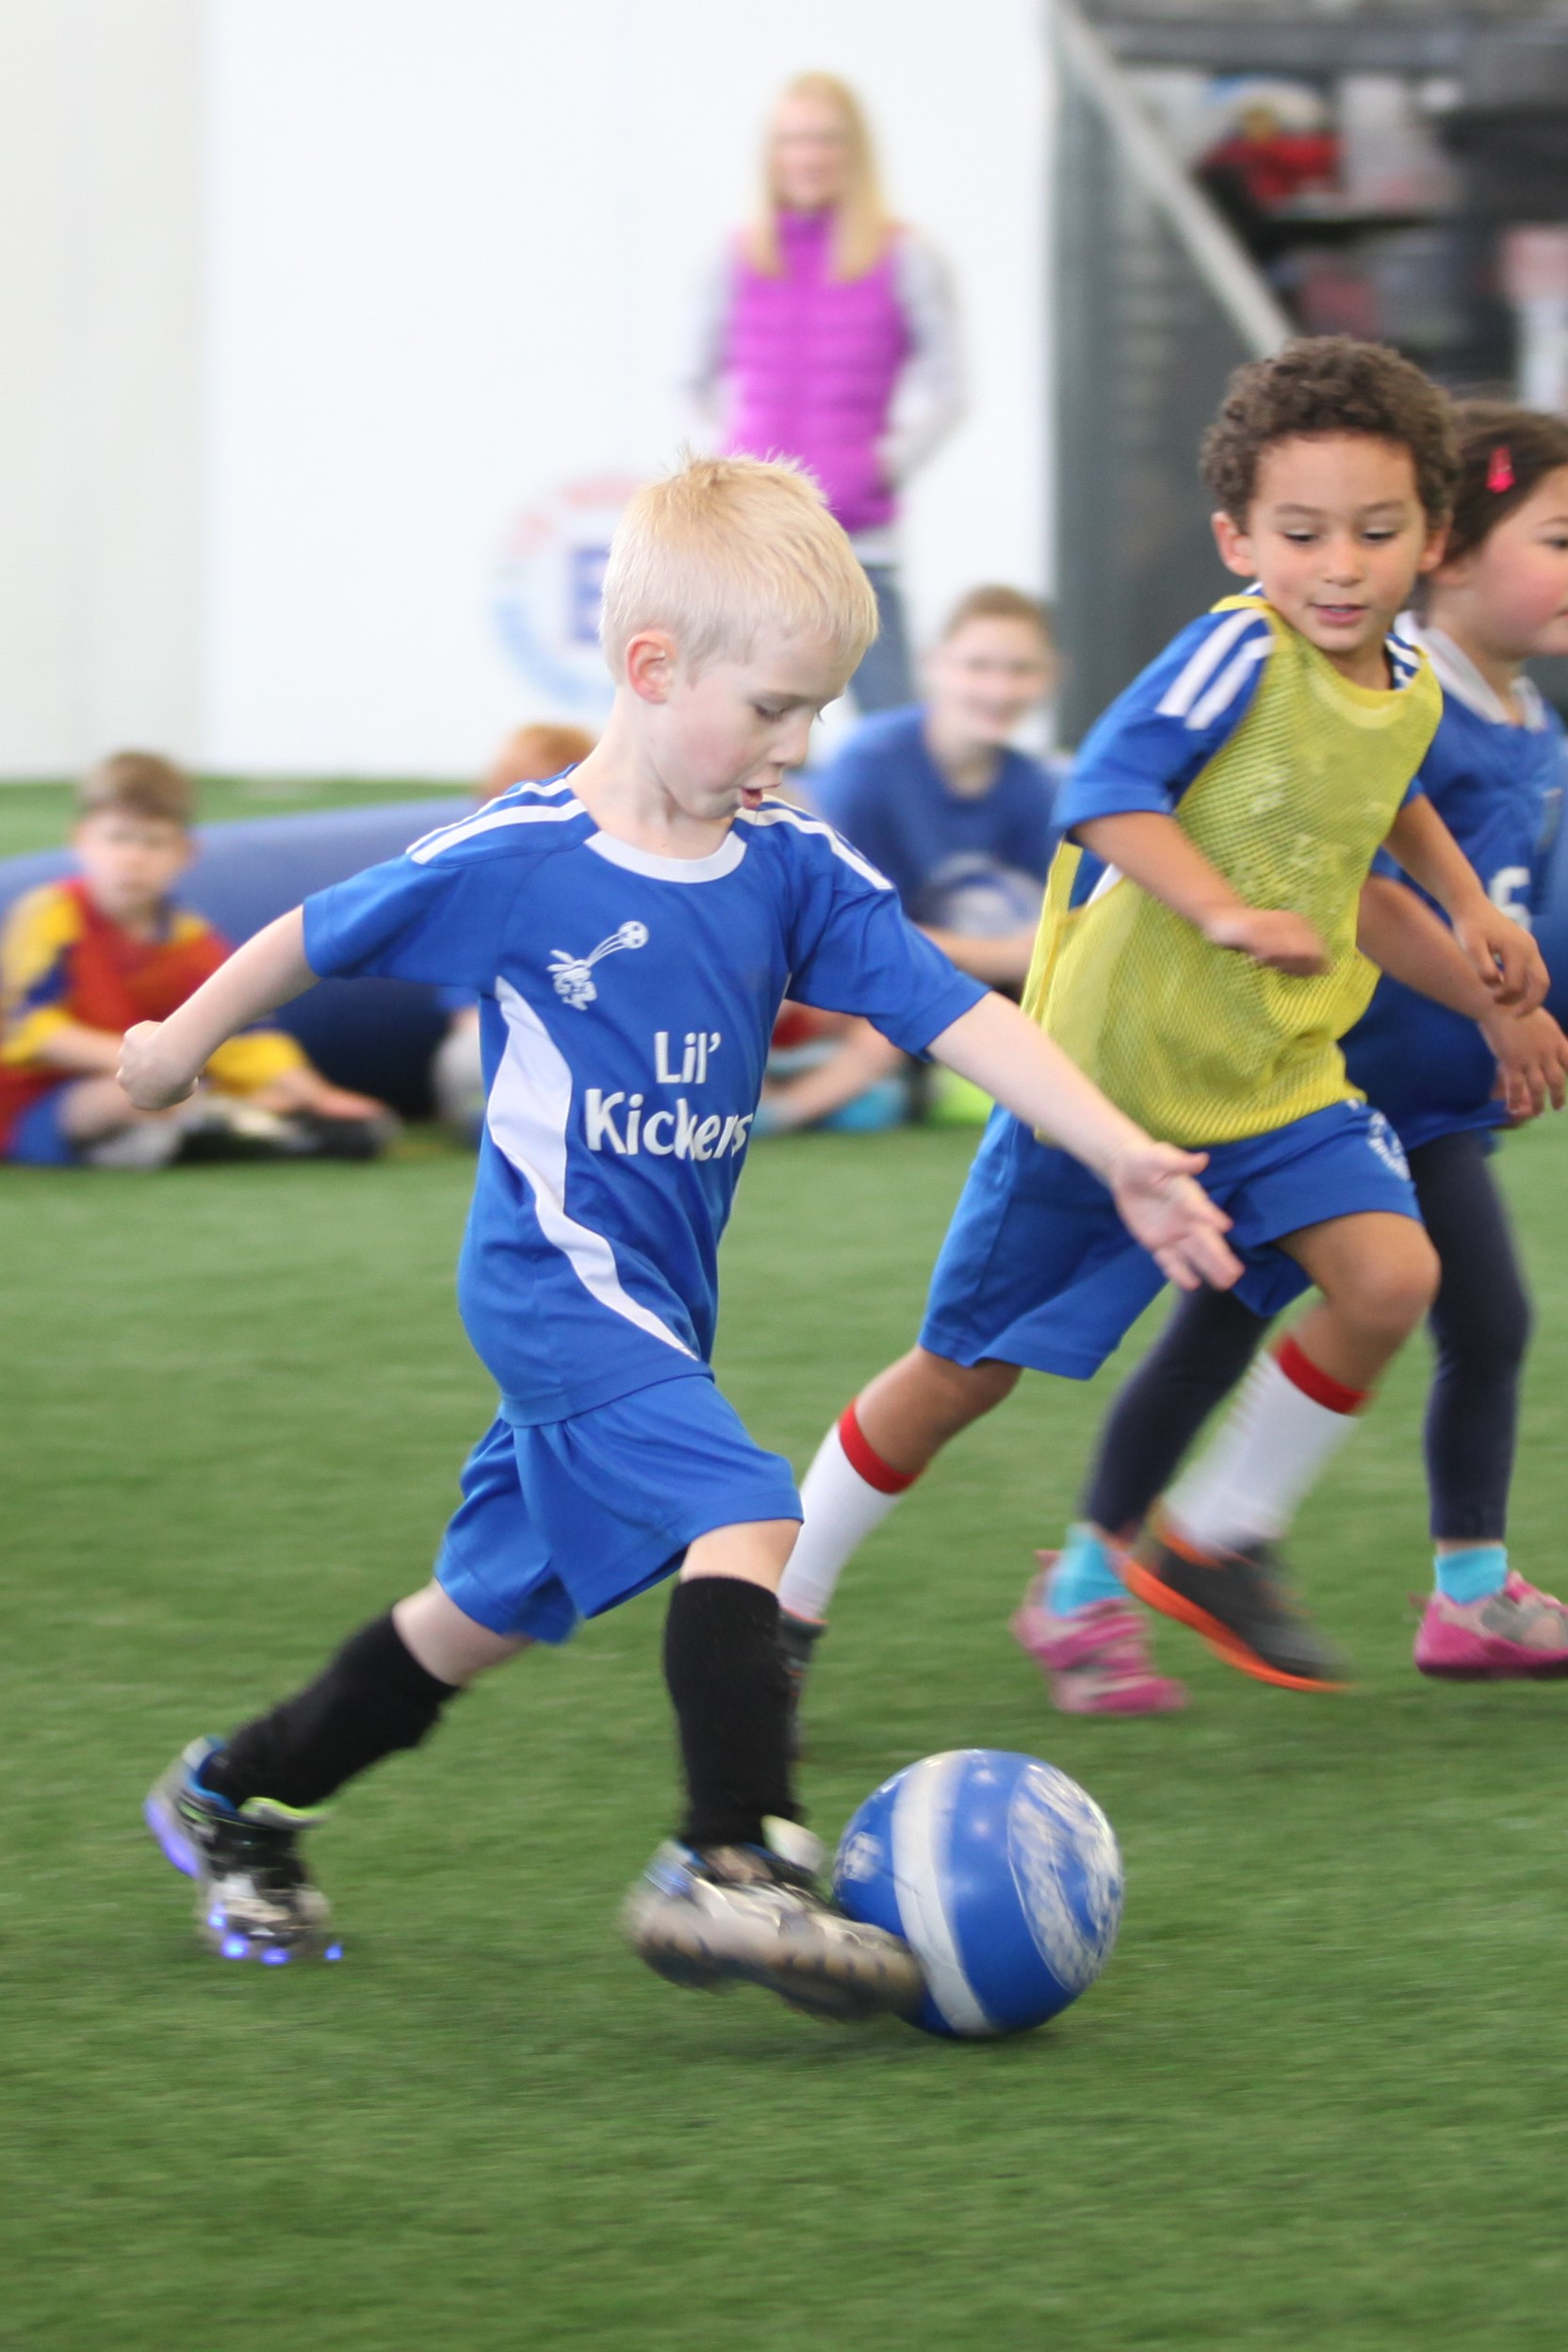 Classes balance the use of fun games and technical drills with non-competitive scrimmaging to teach new skills each week.  Micro 6/7 classes are 50 minutes with 15-20 minutes of instruction and 20-25 minutes of non-competitive scrimmaging.  The class ratio is 12:1